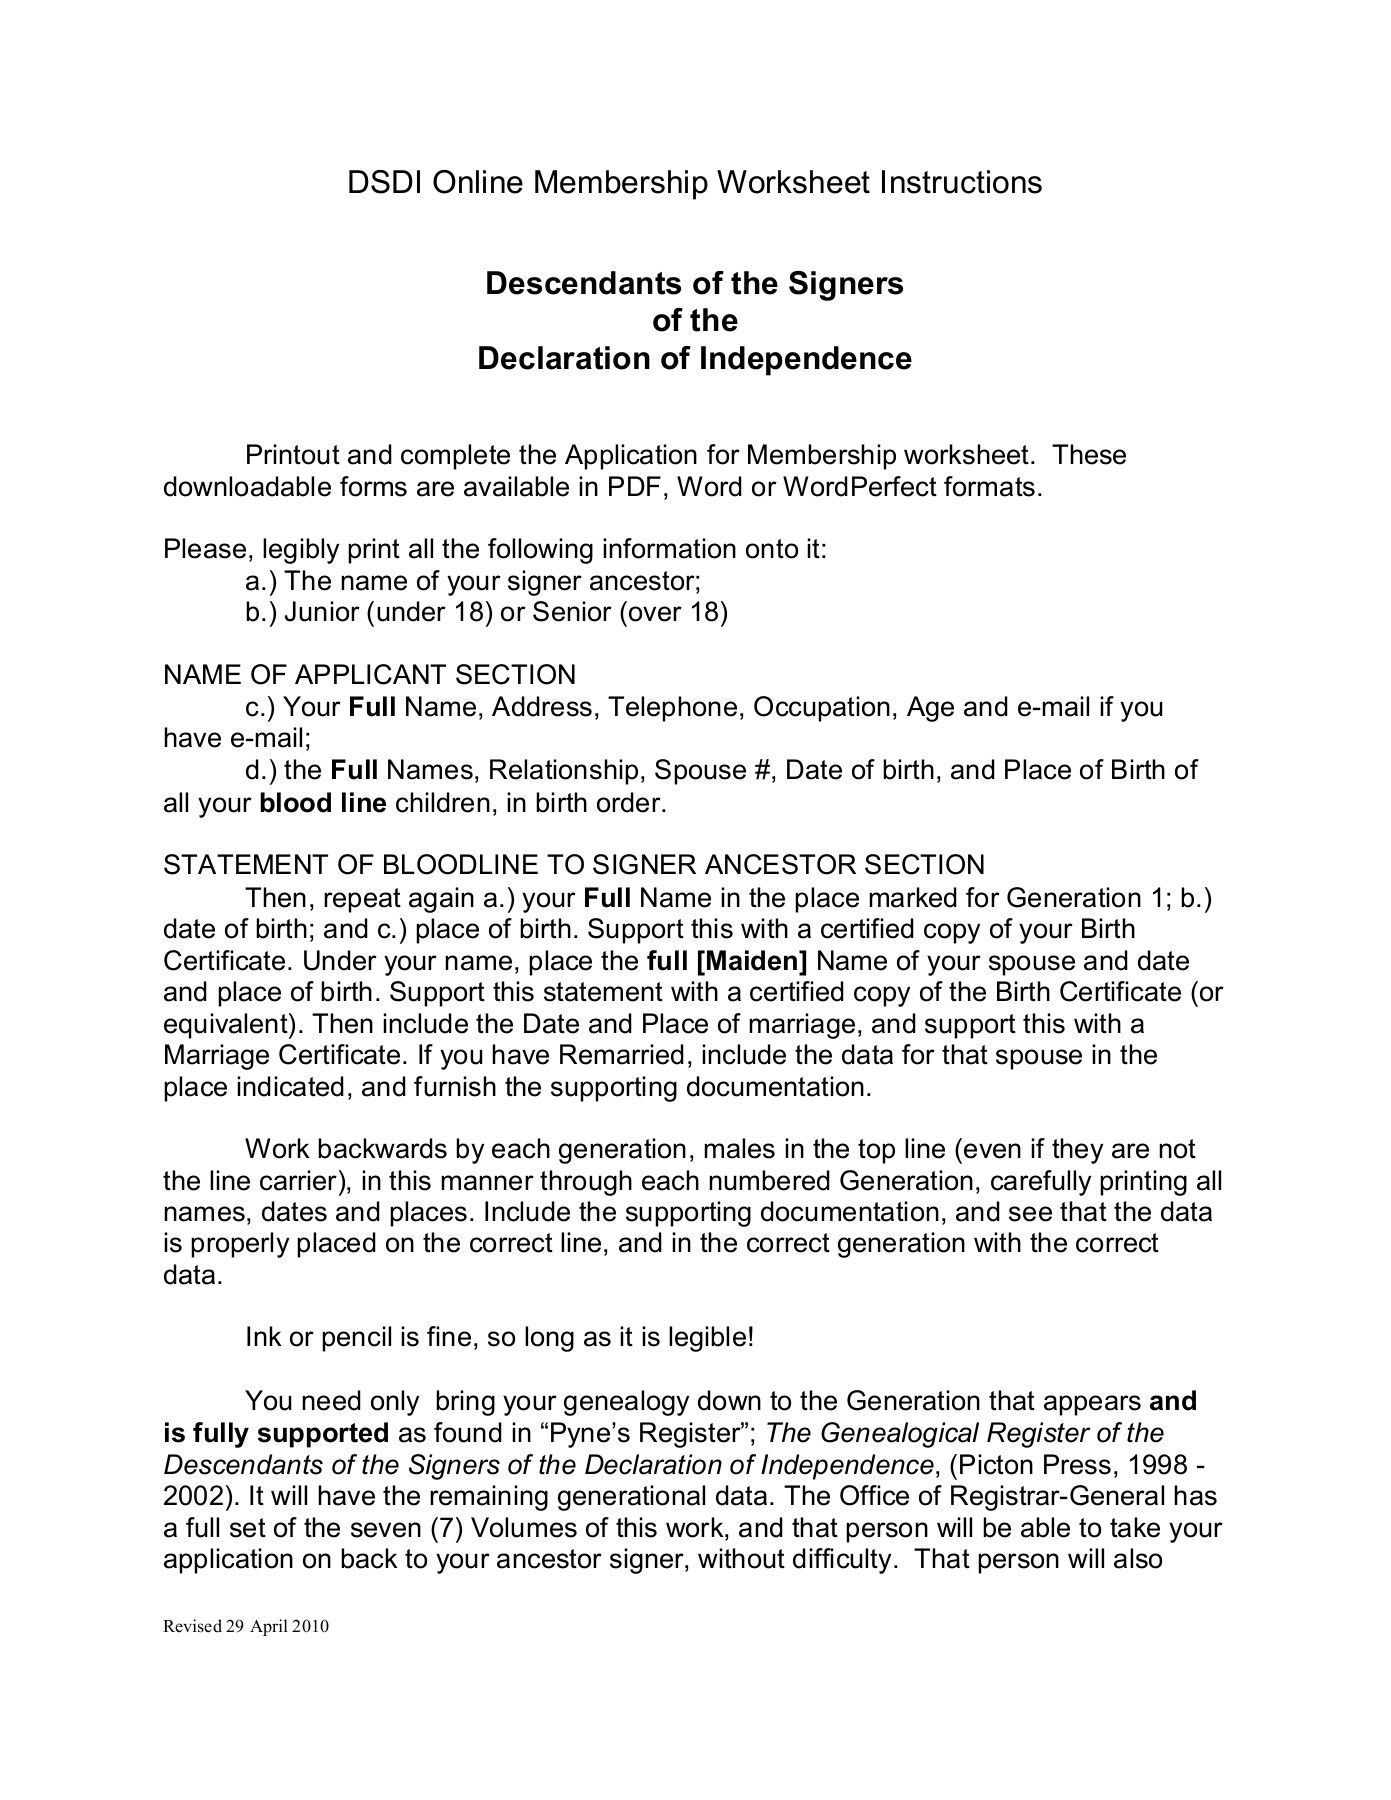 Declaration Of Independence Worksheet Answers Declaration Independence Worksheet Pdf Promotiontablecovers